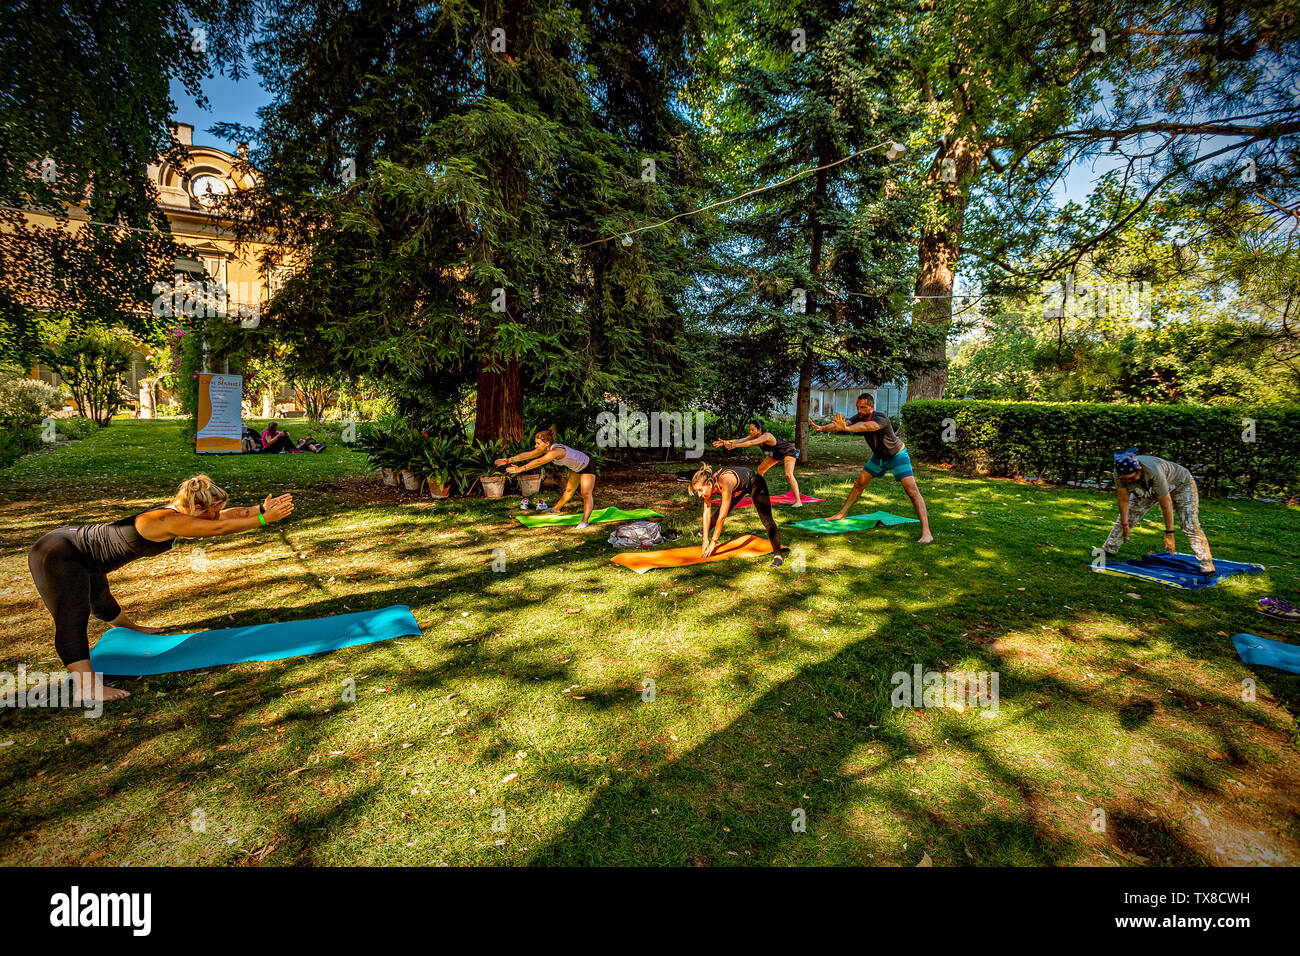 Italy Piedmont Turin Valentino Botanical garden - Wellness activity at the botanical garden - Stock Image